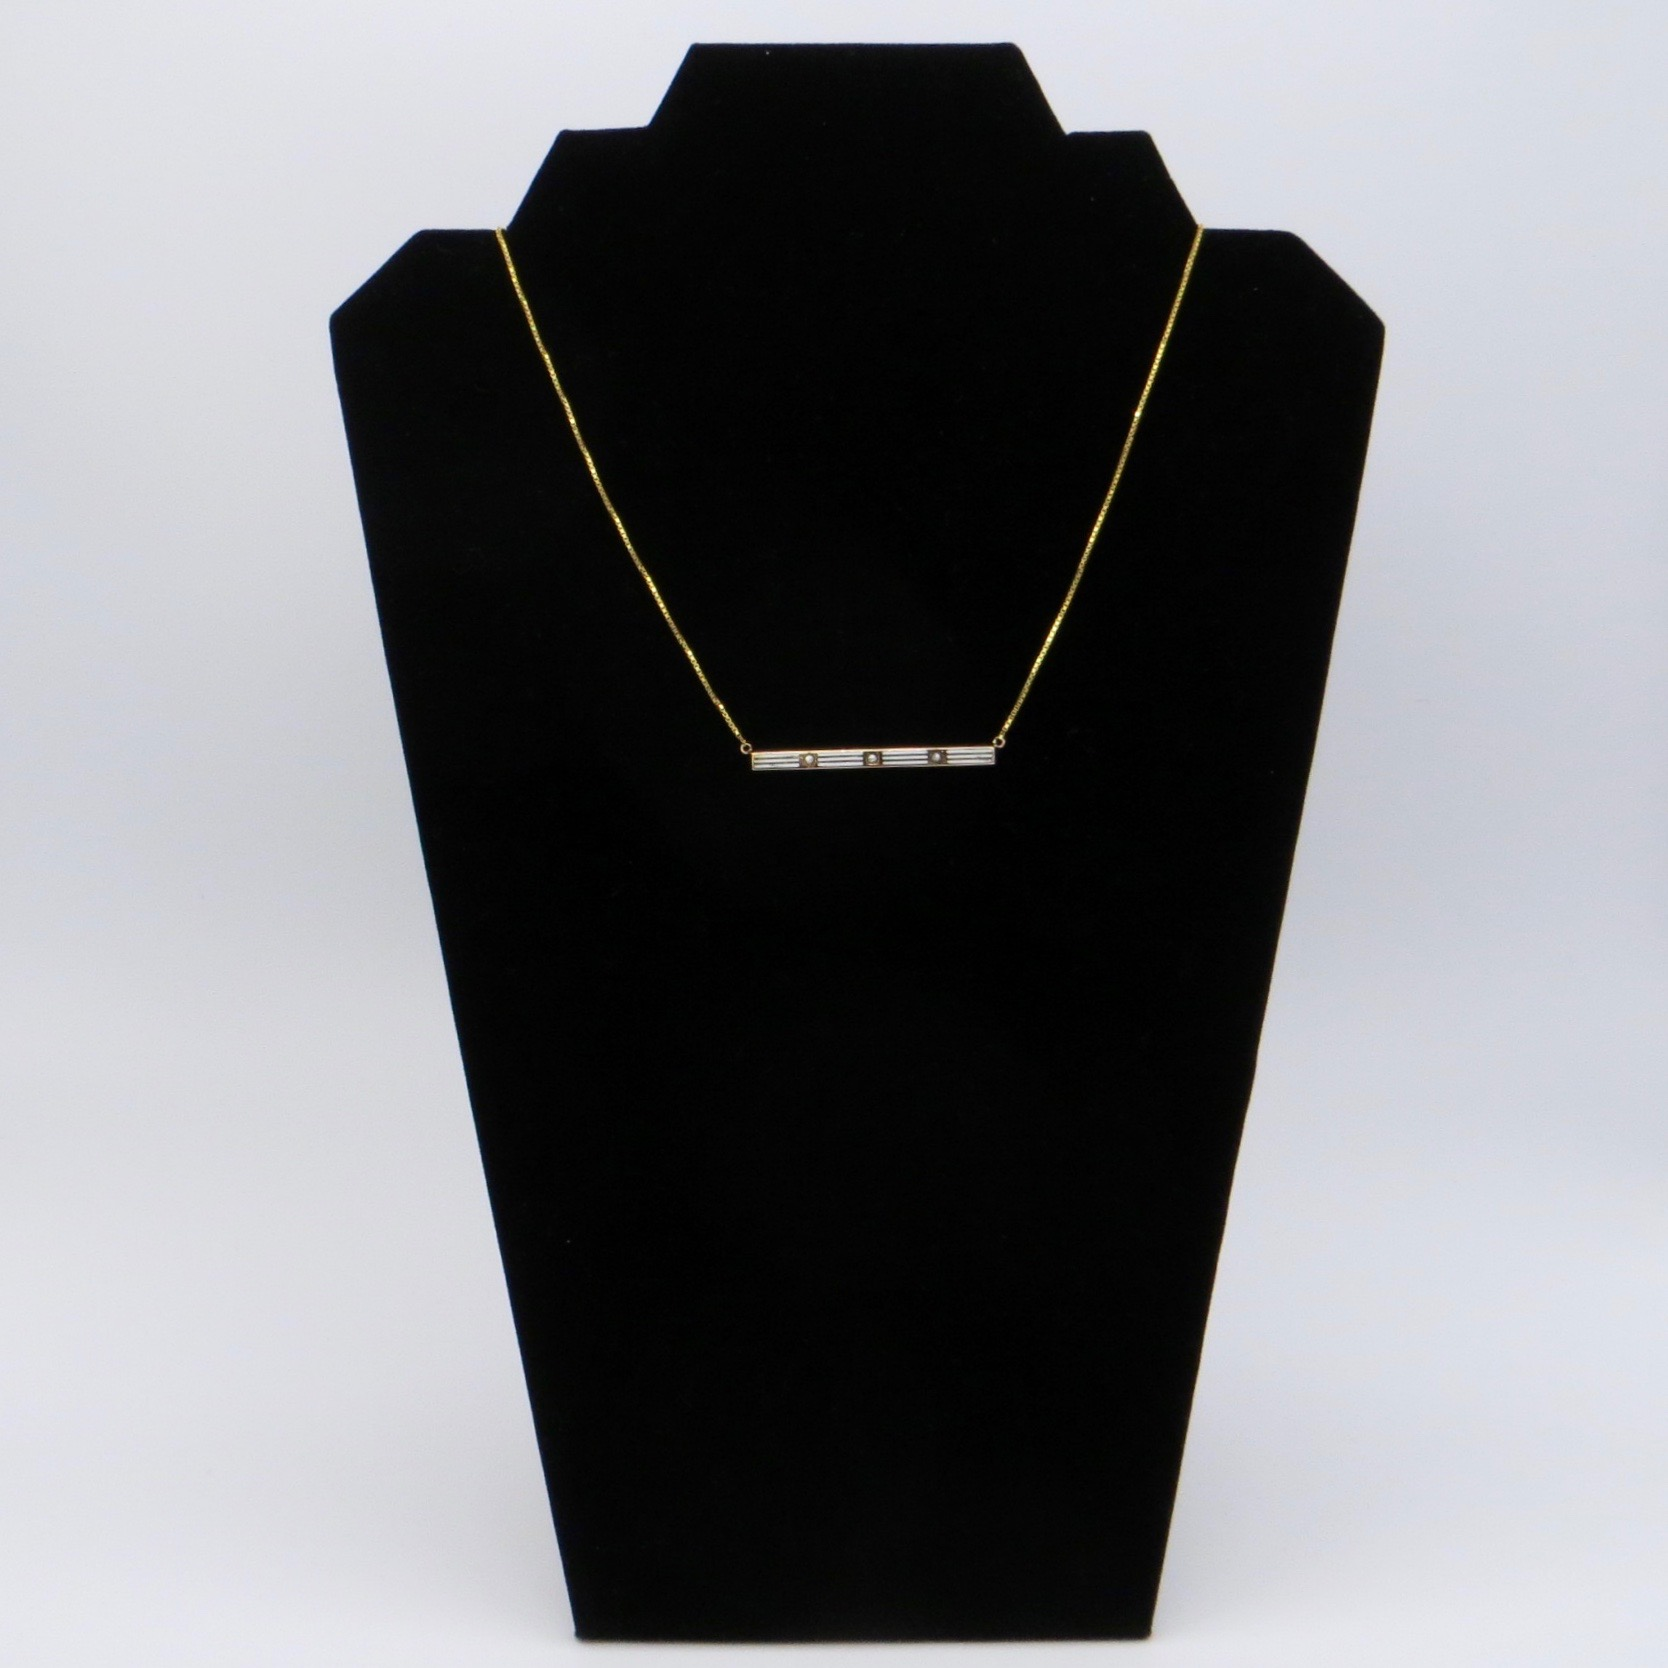 14kt Gold & White Striped Enamel Necklace (GF Chain)